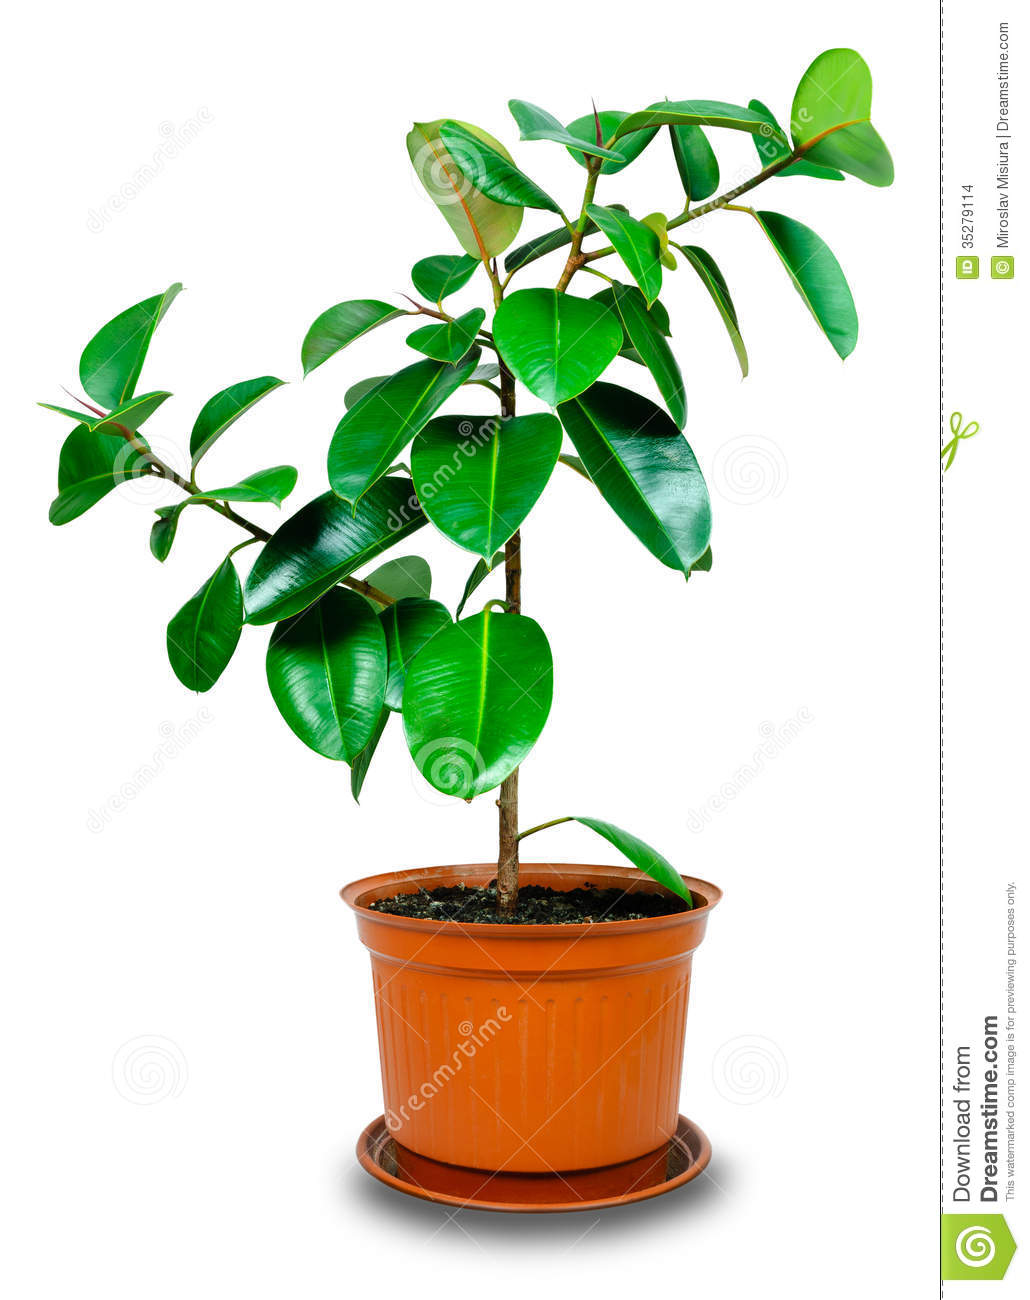 hight resolution of potted plant clipart